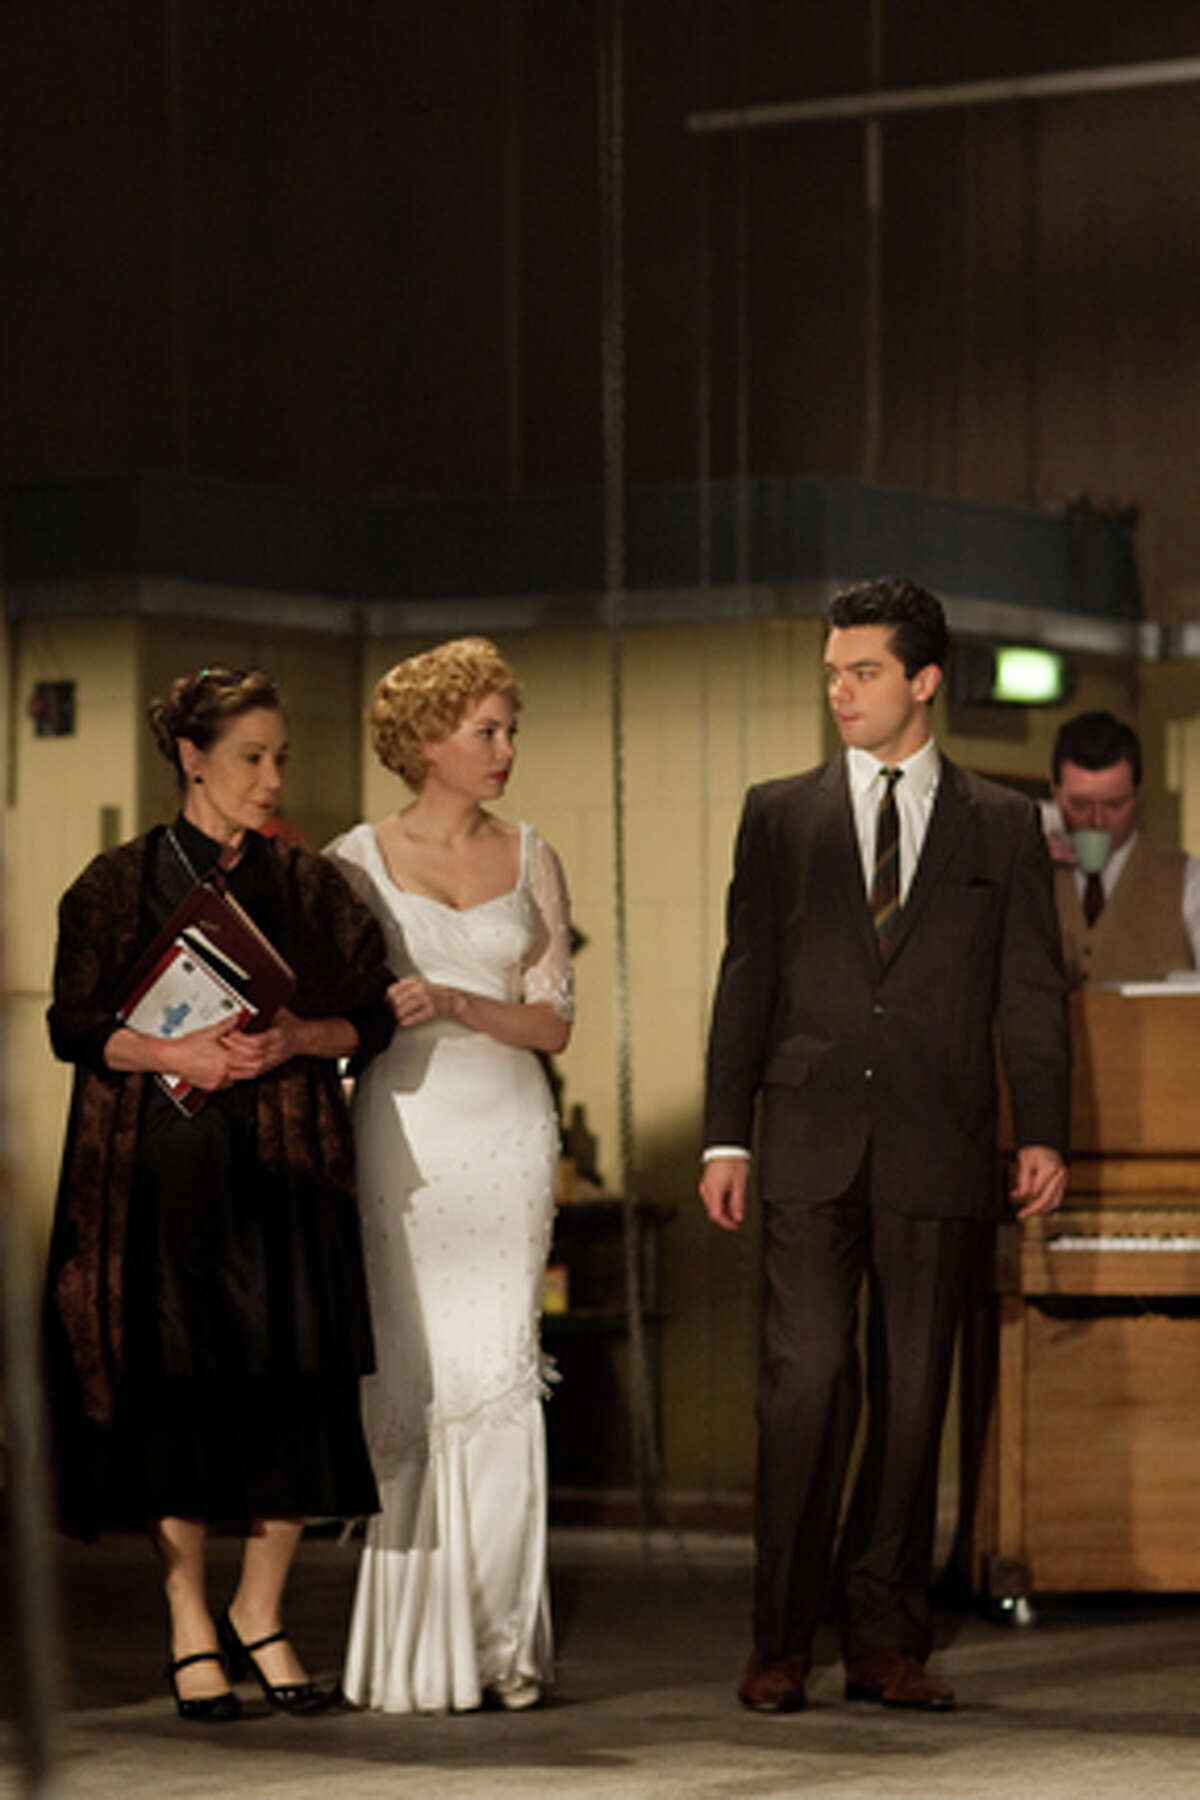 (L-R) Zoe Wanamaker as Paula Strasberg, Michelle Williams as Marilyn Monroe and Dominic Cooper as Milton Greene in